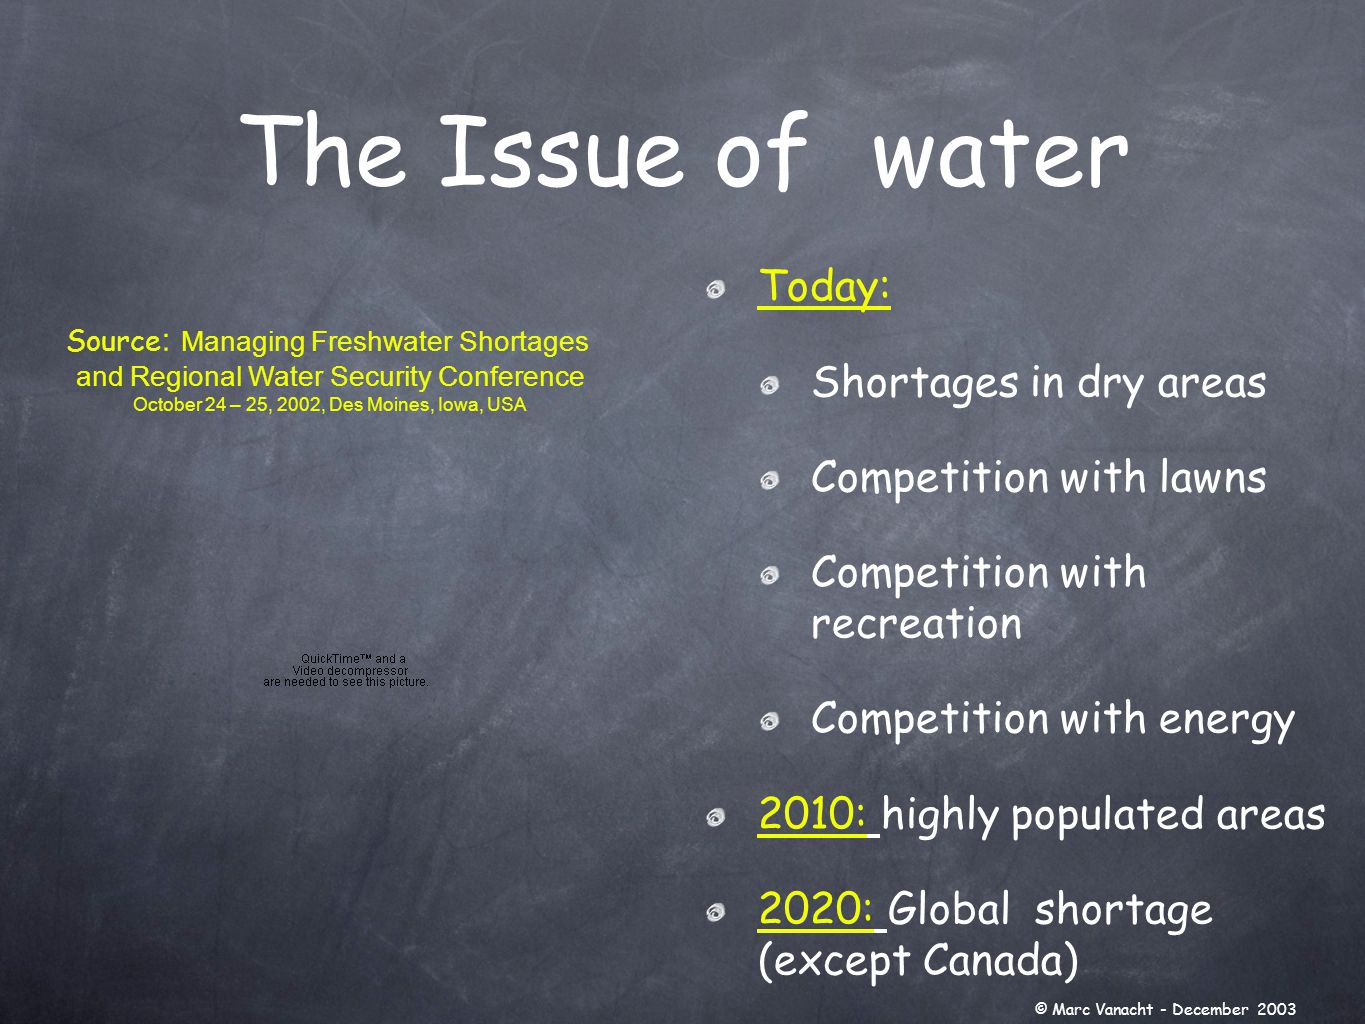 The Issue of water Today: Shortages in dry areas Competition with lawns Competition with recreation Competition with energy 2010: highly populated areas 2020: Global shortage (except Canada) Source : Managing Freshwater Shortages and Regional Water Security Conference October 24 – 25, 2002, Des Moines, Iowa, USA © Marc Vanacht - December 2003